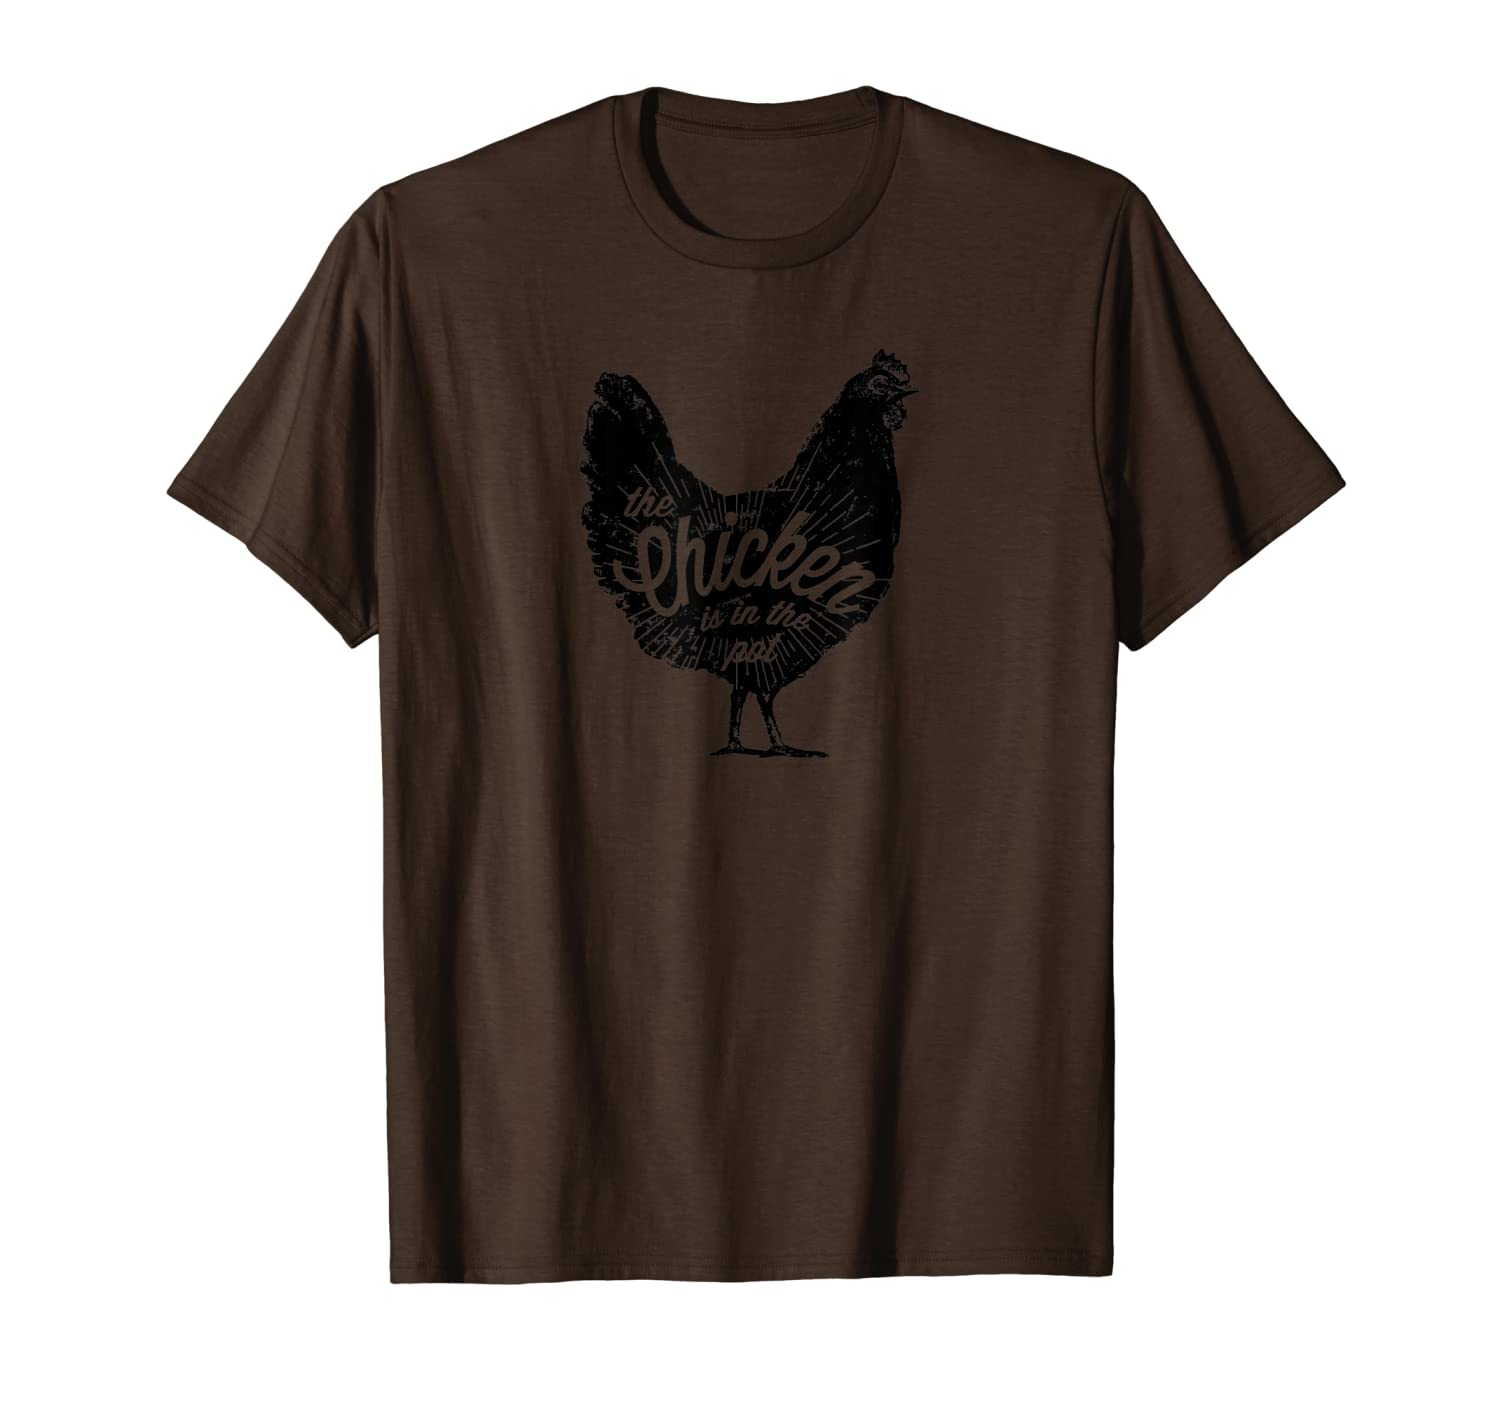 """The Chicken is in the Pot"" – vintage black design T-Shirt"